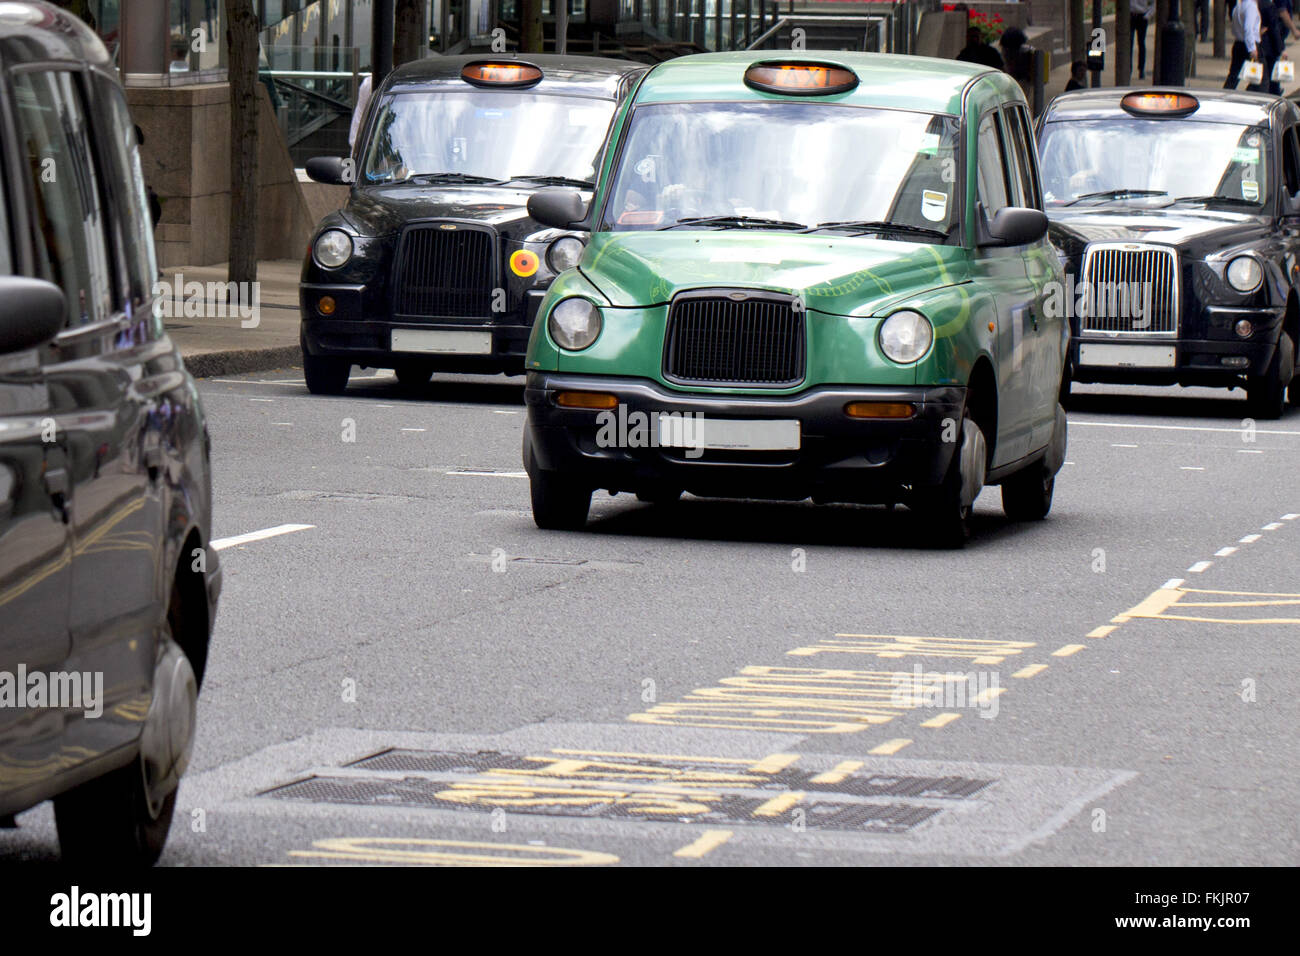 Four iconic, famous London black cab taxis travelling through Canary Wharf Stock Photo